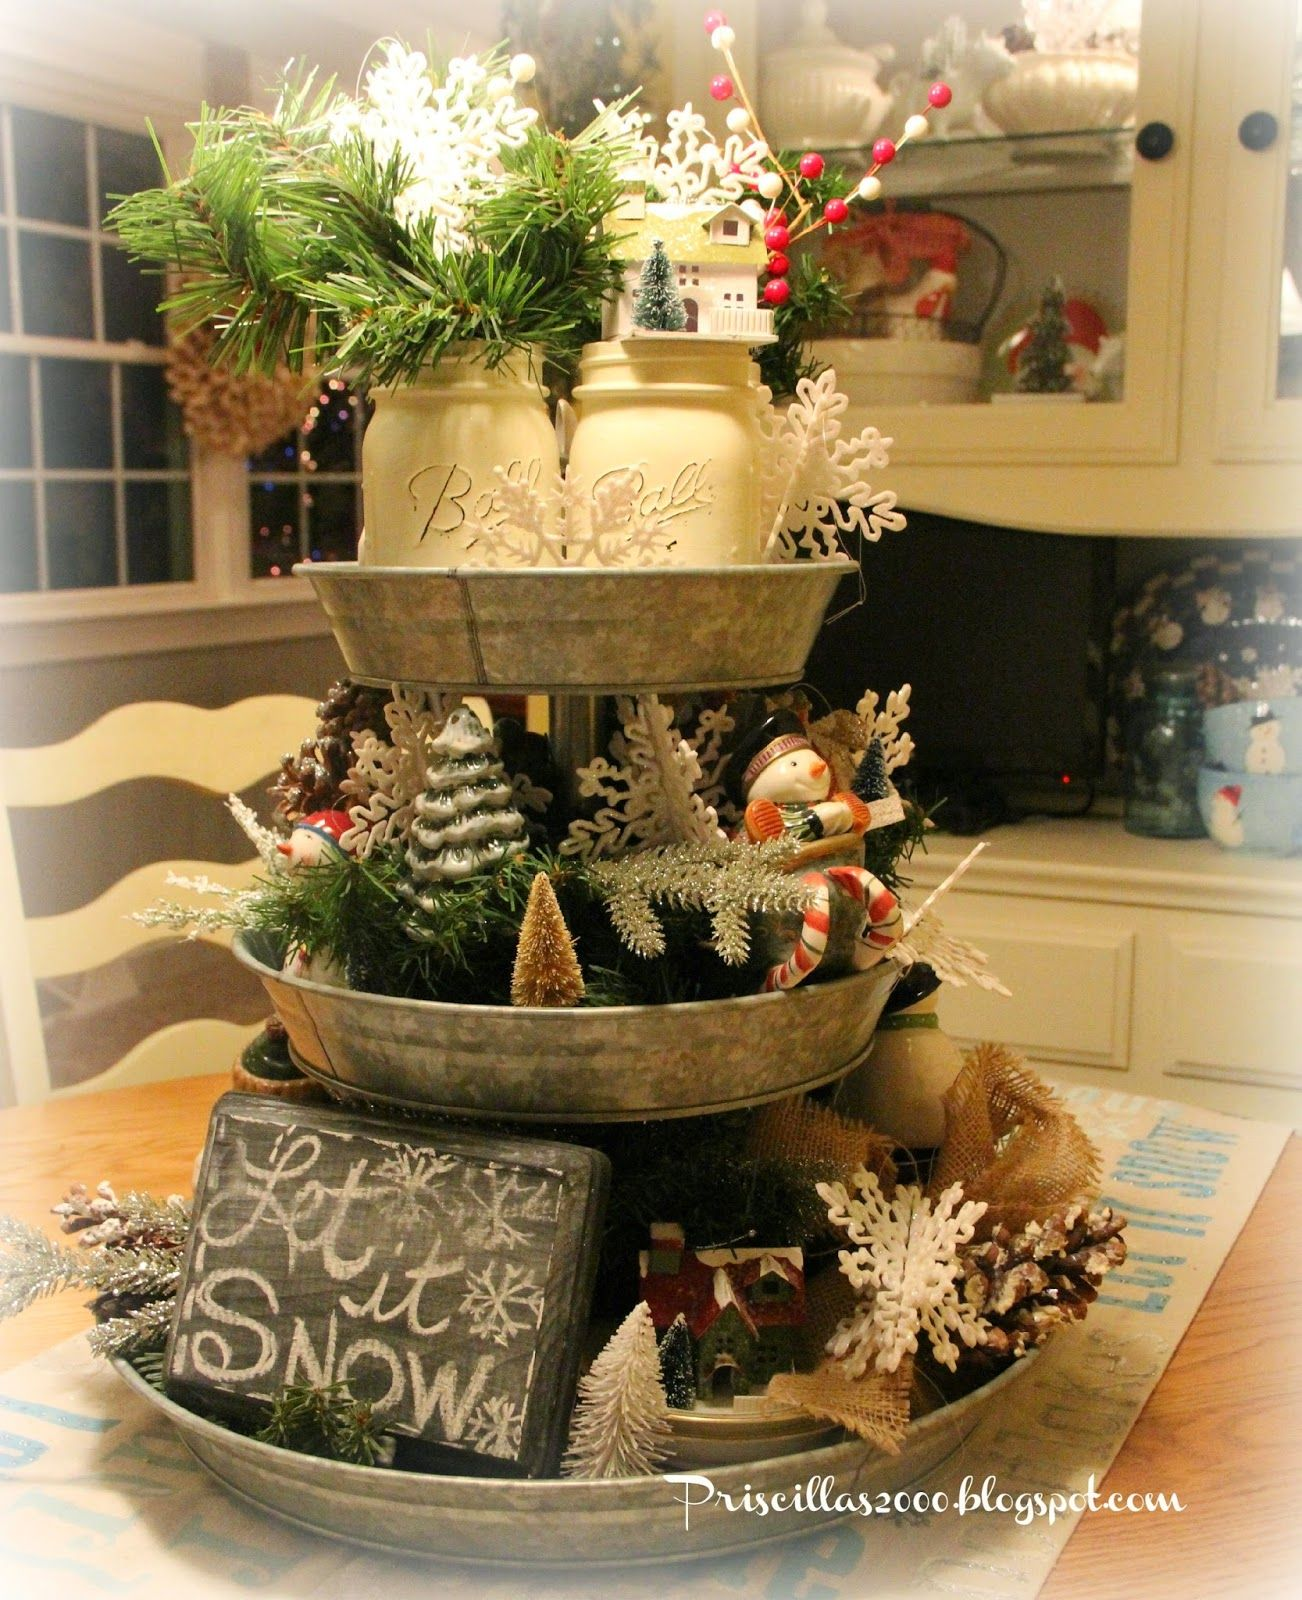 Newtown ct taking down christmas decorations - Find This Pin And More On Tiered Metal Tray